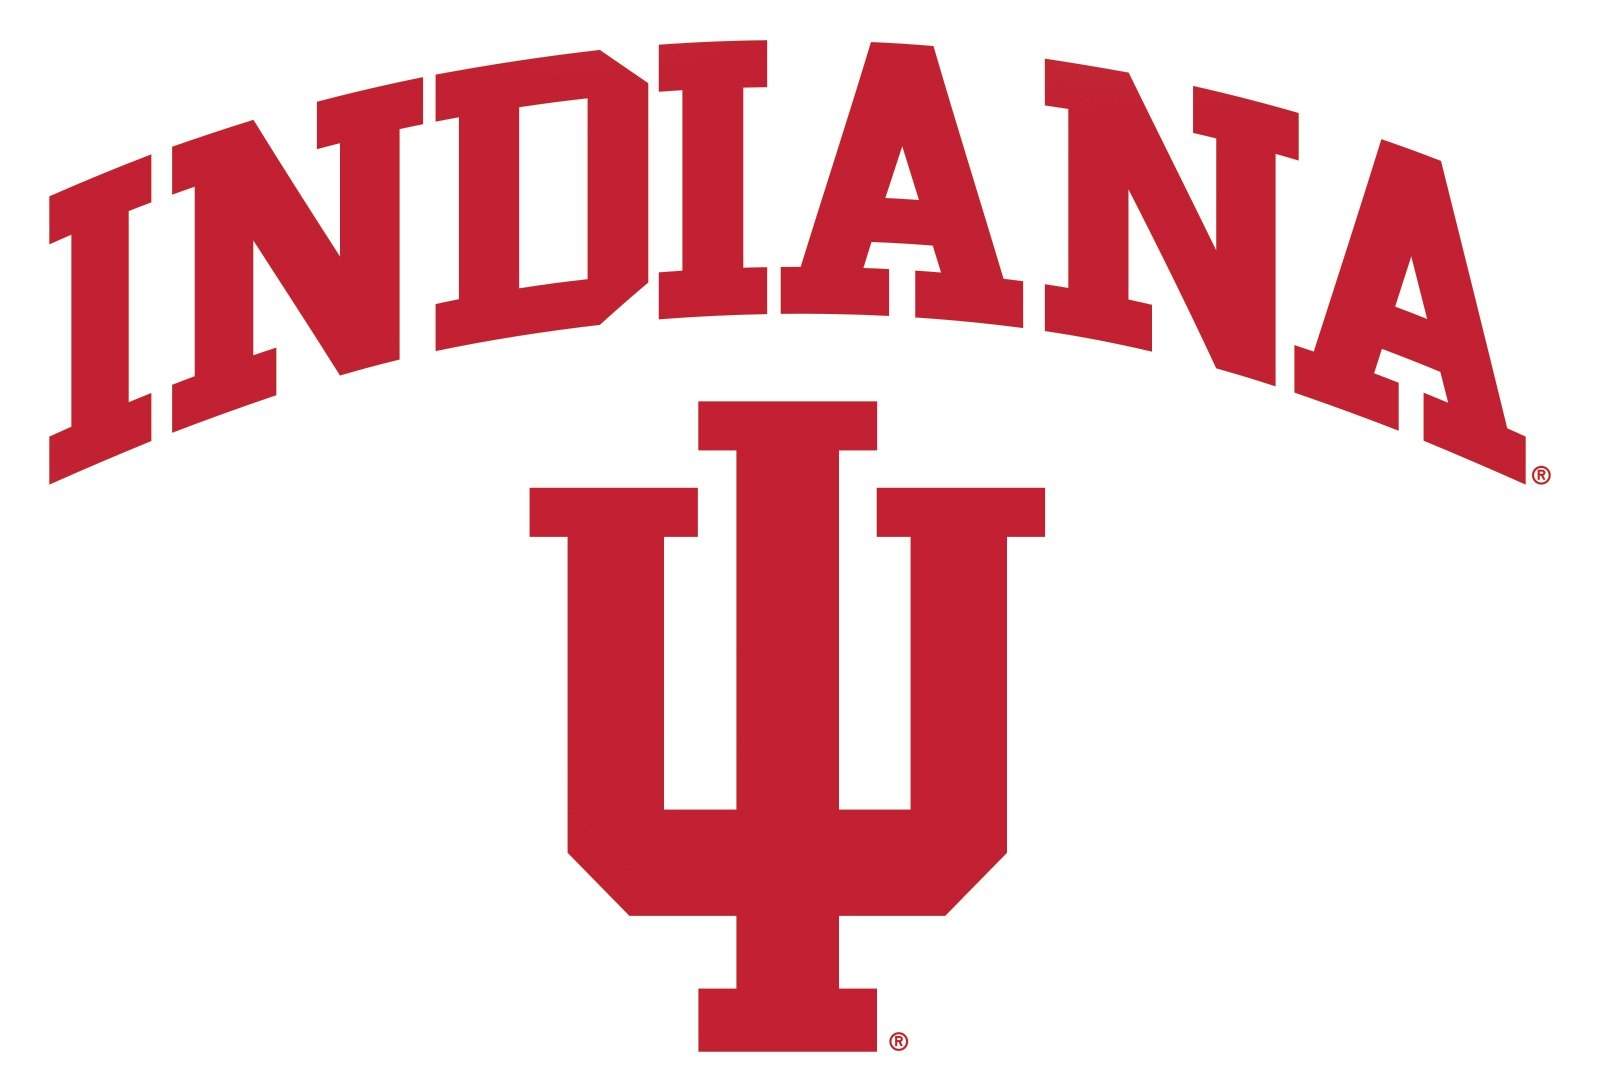 - Sustainability Defined profiled by Indiana University's SPEA Magazine and IU's Alumni Association as 20 Podcasts Worth Subscribing To